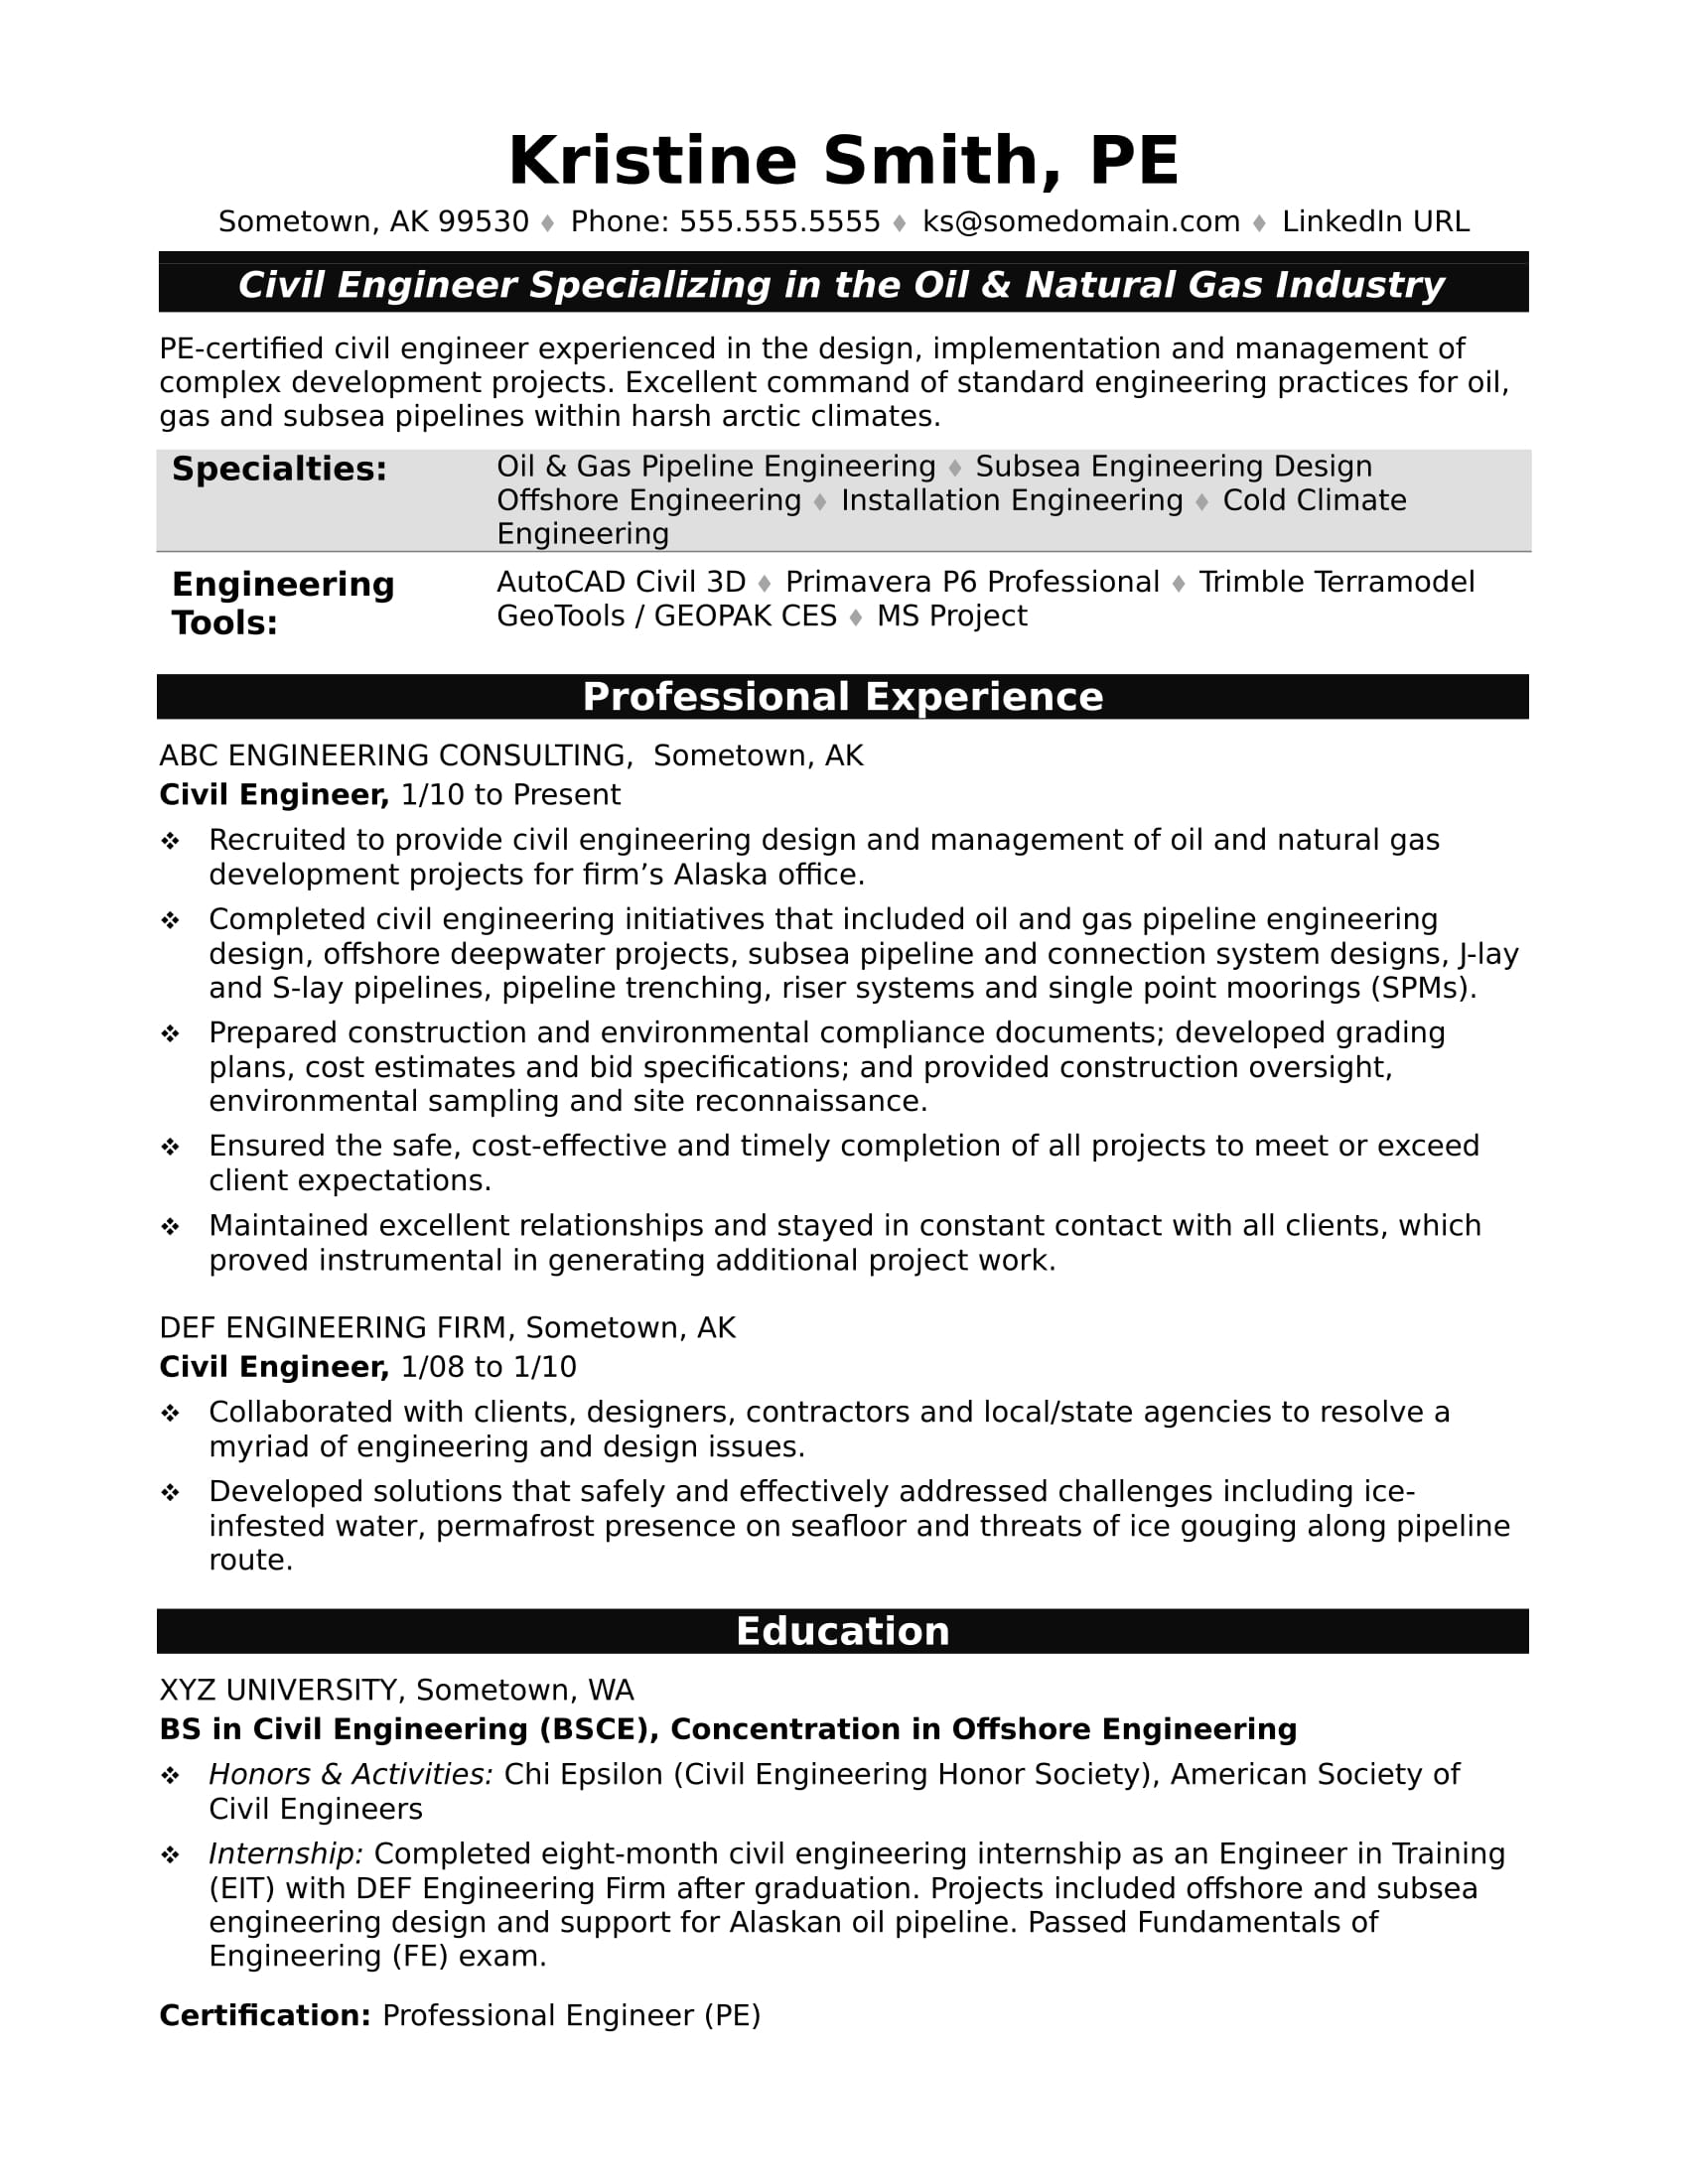 sample resume for midlevel civil engineer monster writing exam bloomberg market concepts Resume Resume Writing For Exam